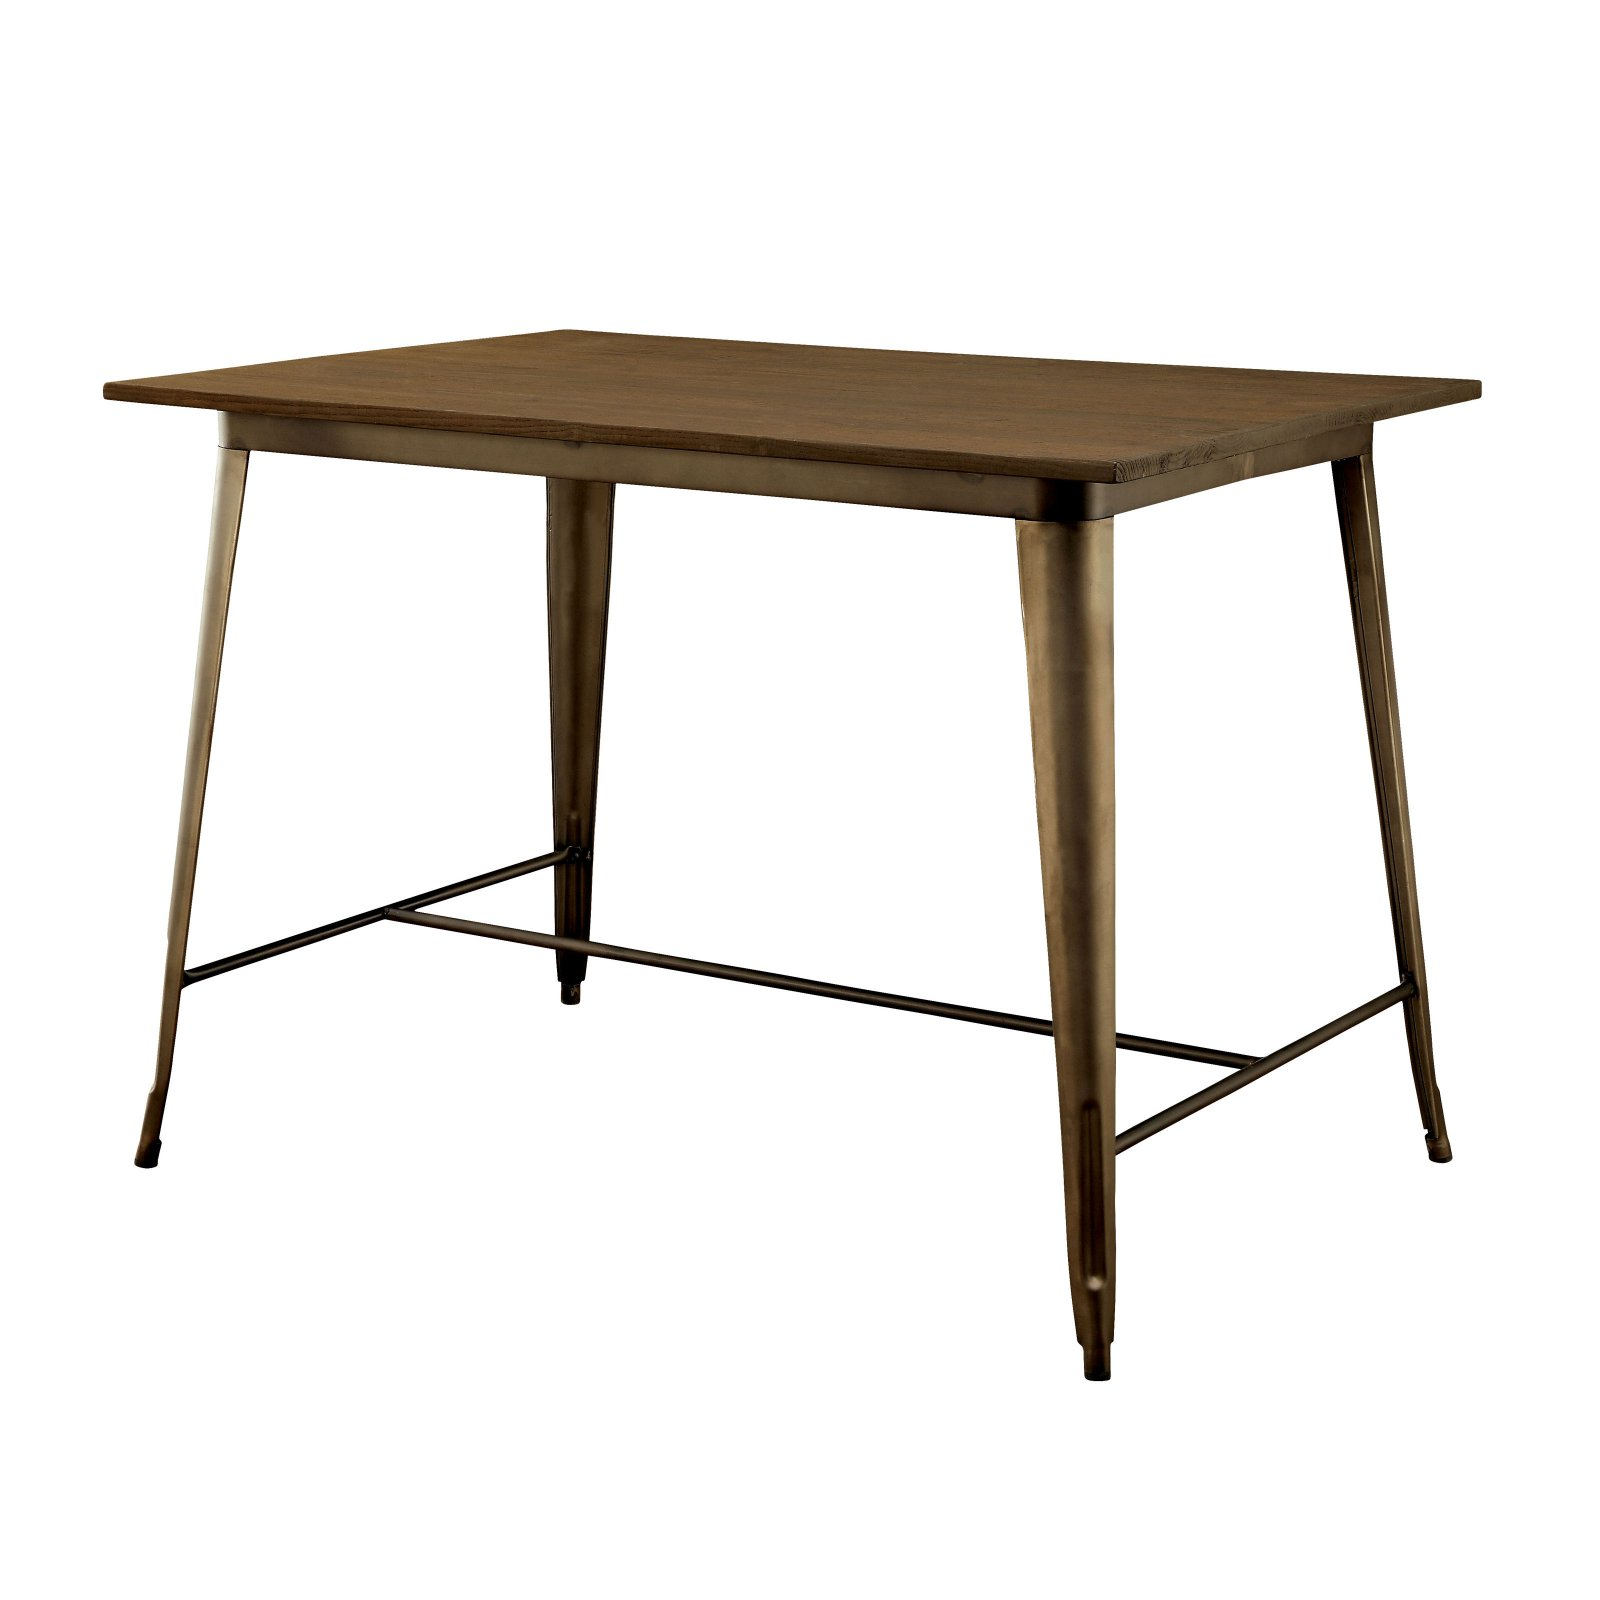 Furniture of America Olmsted Counter Height Metal Framed Dining Table